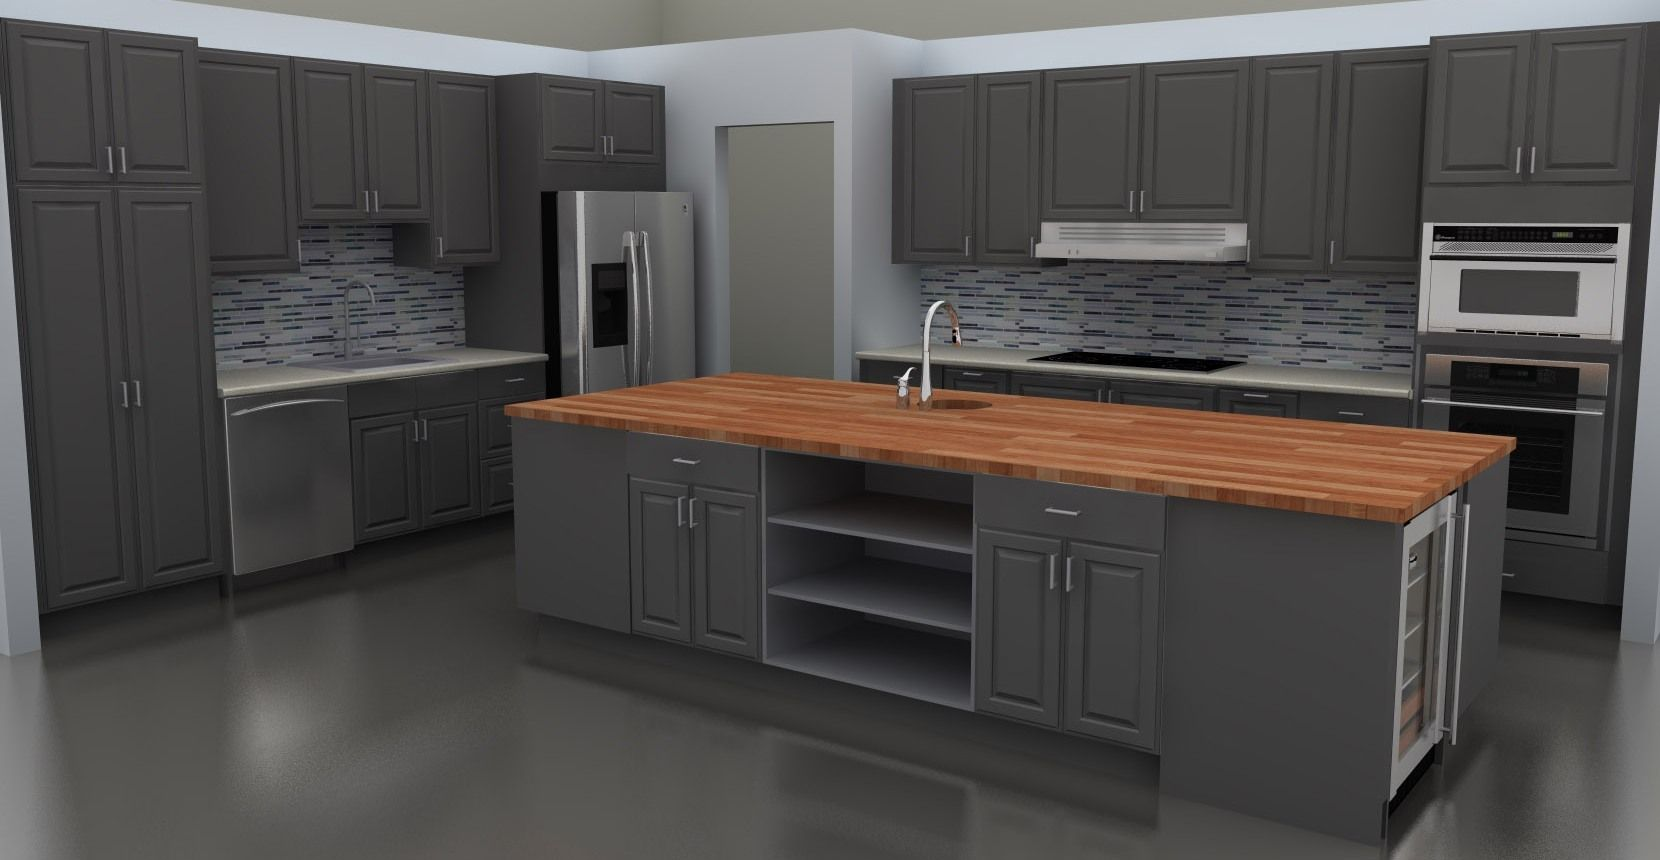 Grey Kitchen Cabinet Images the decent styles of the retro ikea kitchen cabinets gray